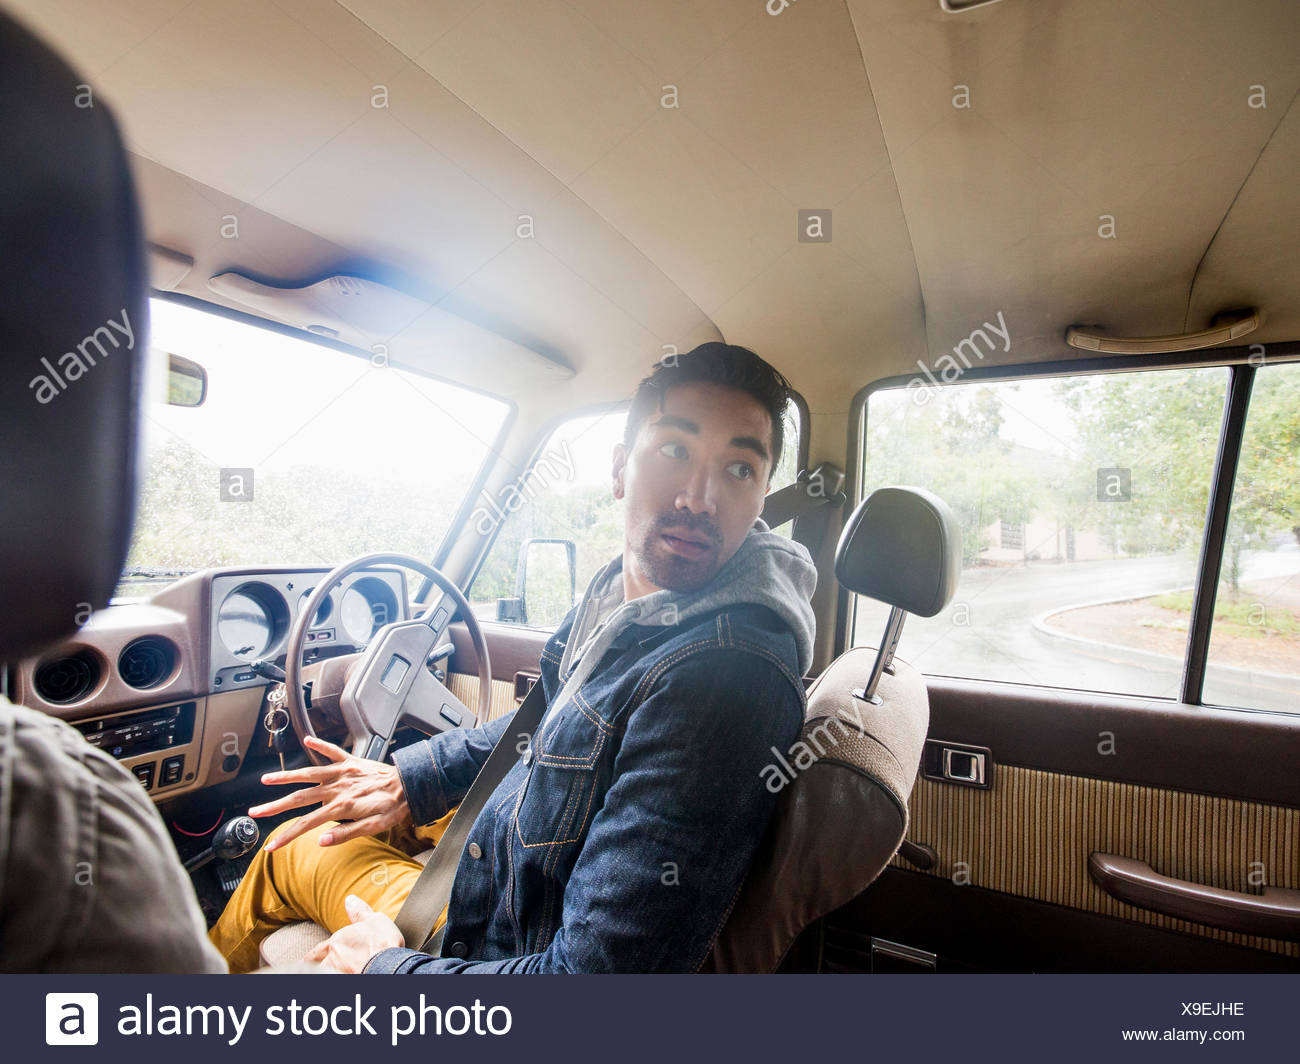 Young man in a car, in the driver seat, looking over his shoulder - Stock Image